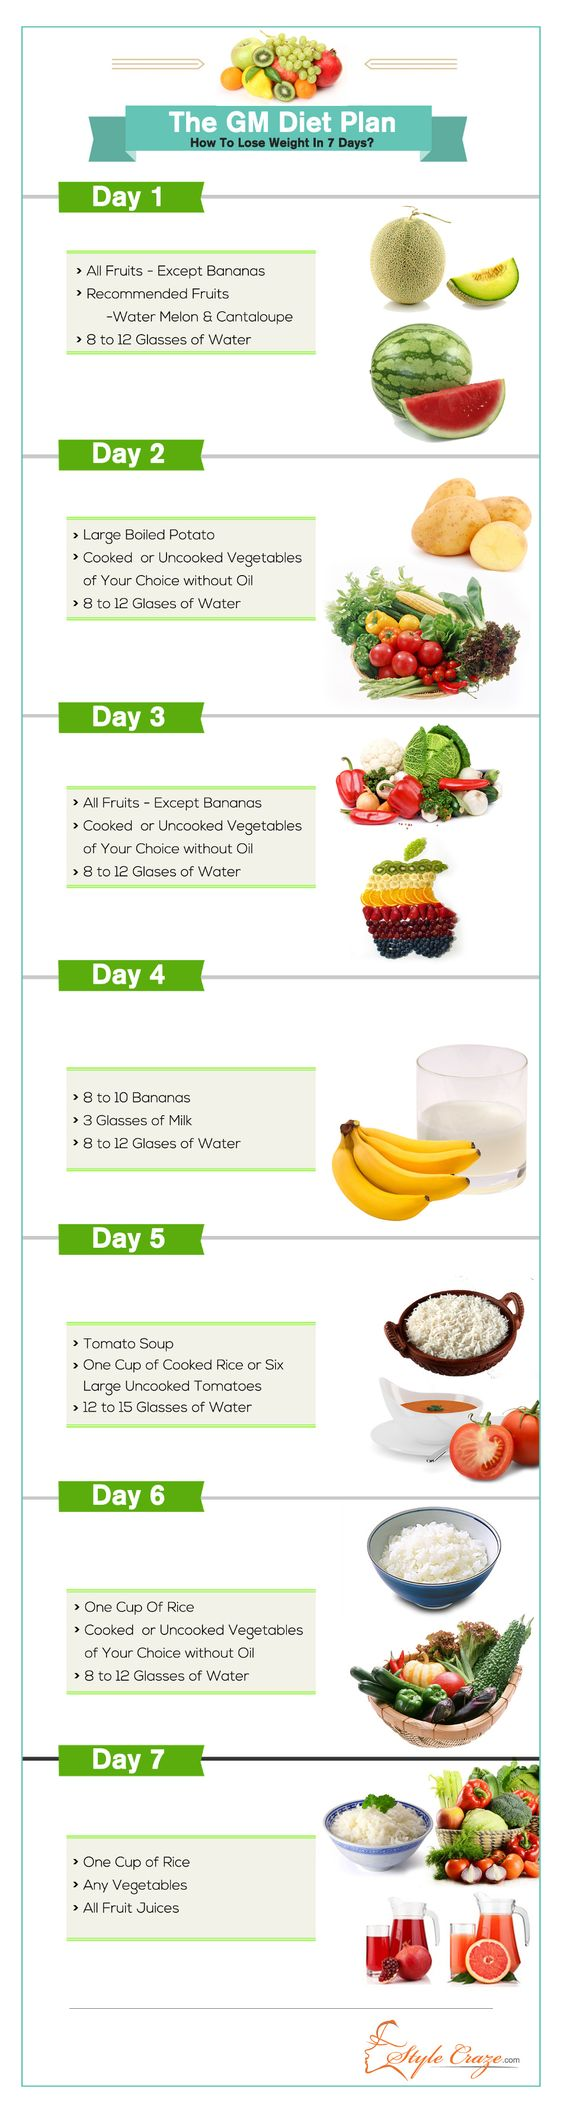 The GM Diet Plan: How To Lose Weight In Just 7 Days ...